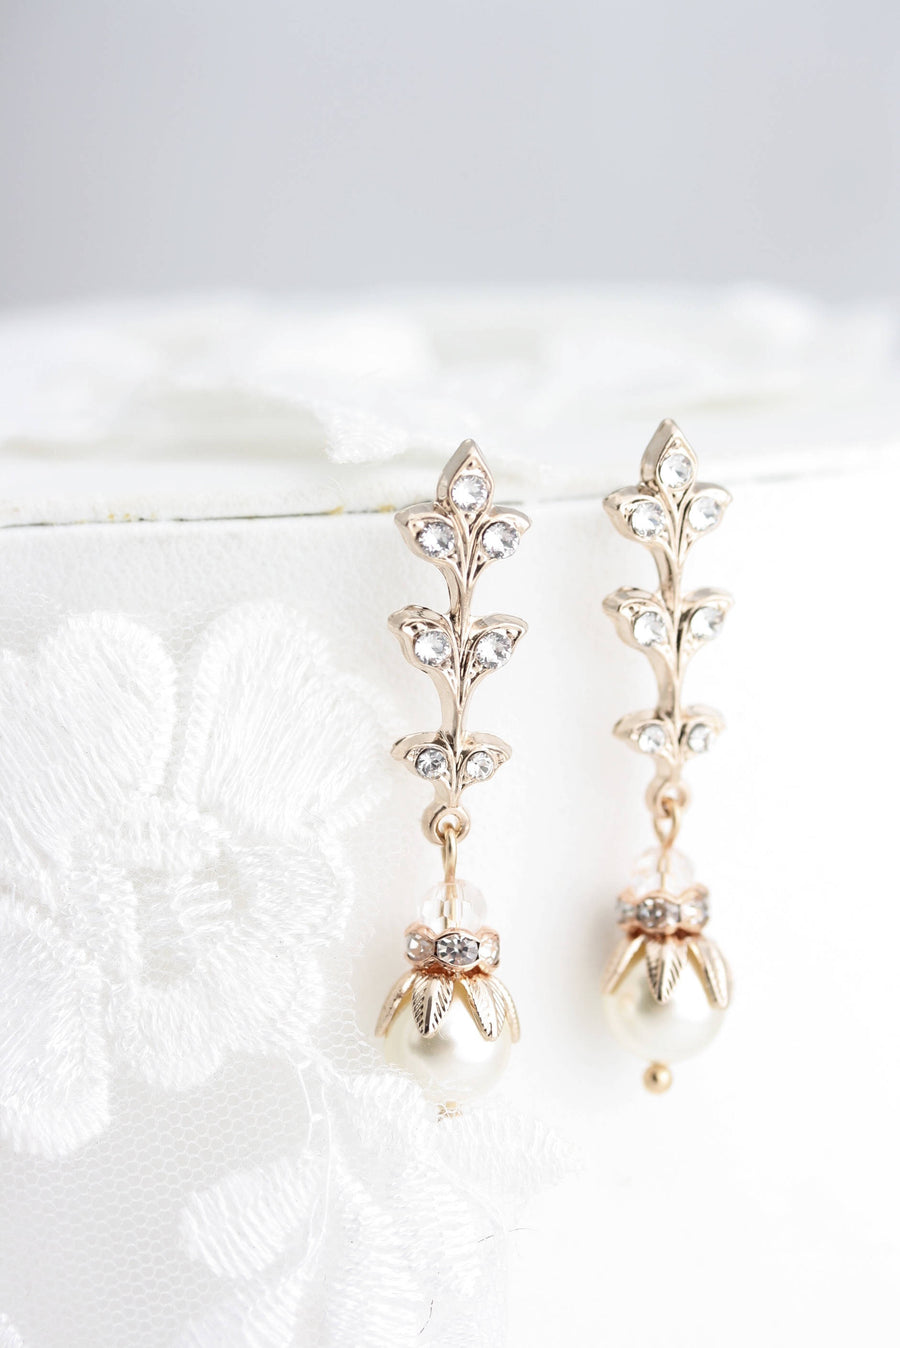 NEVE PEARL BRIDAL EARRINGS - Lulu Splendor